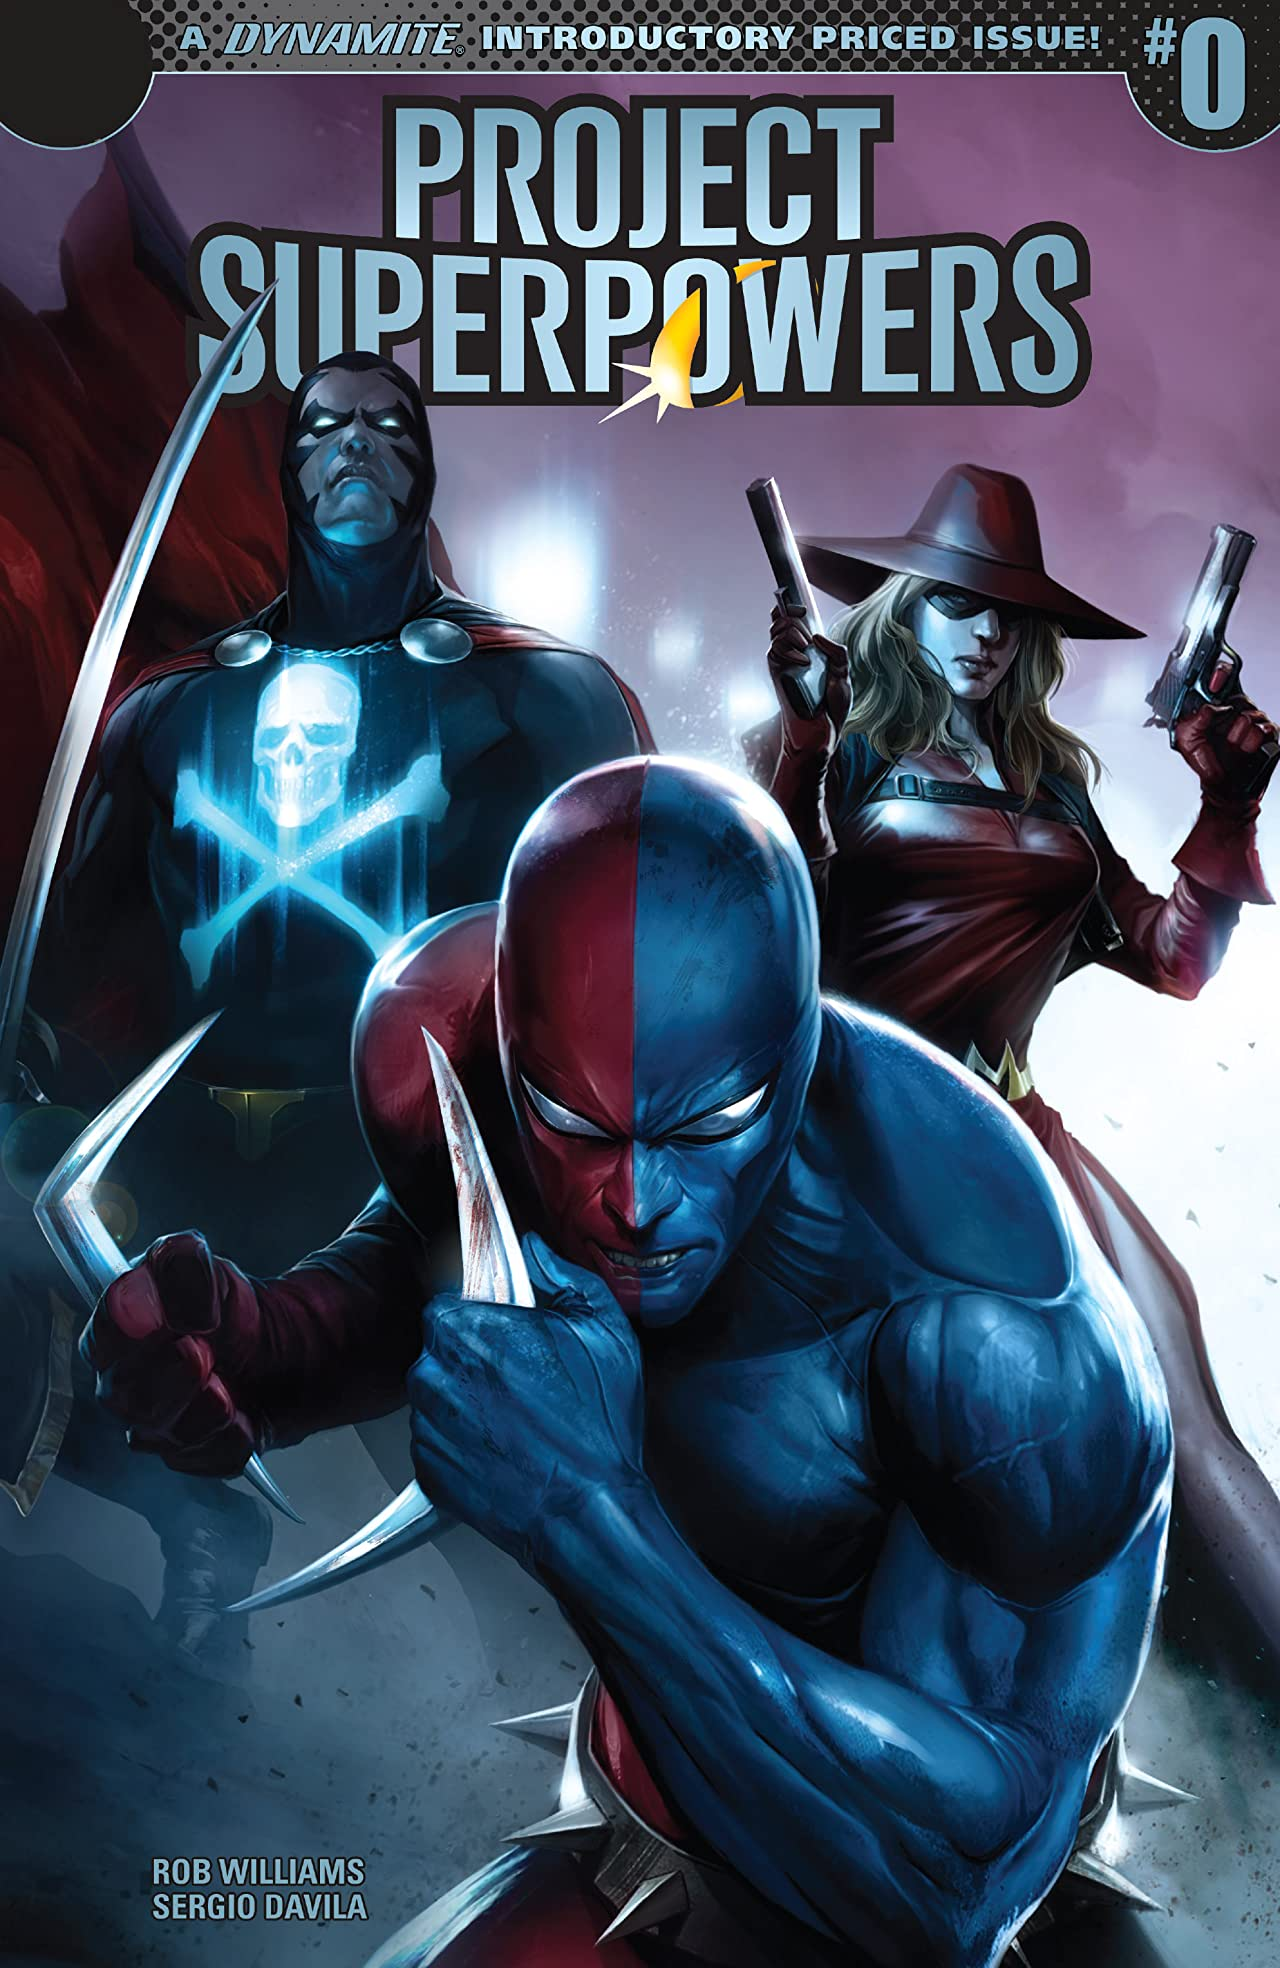 Project: Superpowers Vol. 2 #0